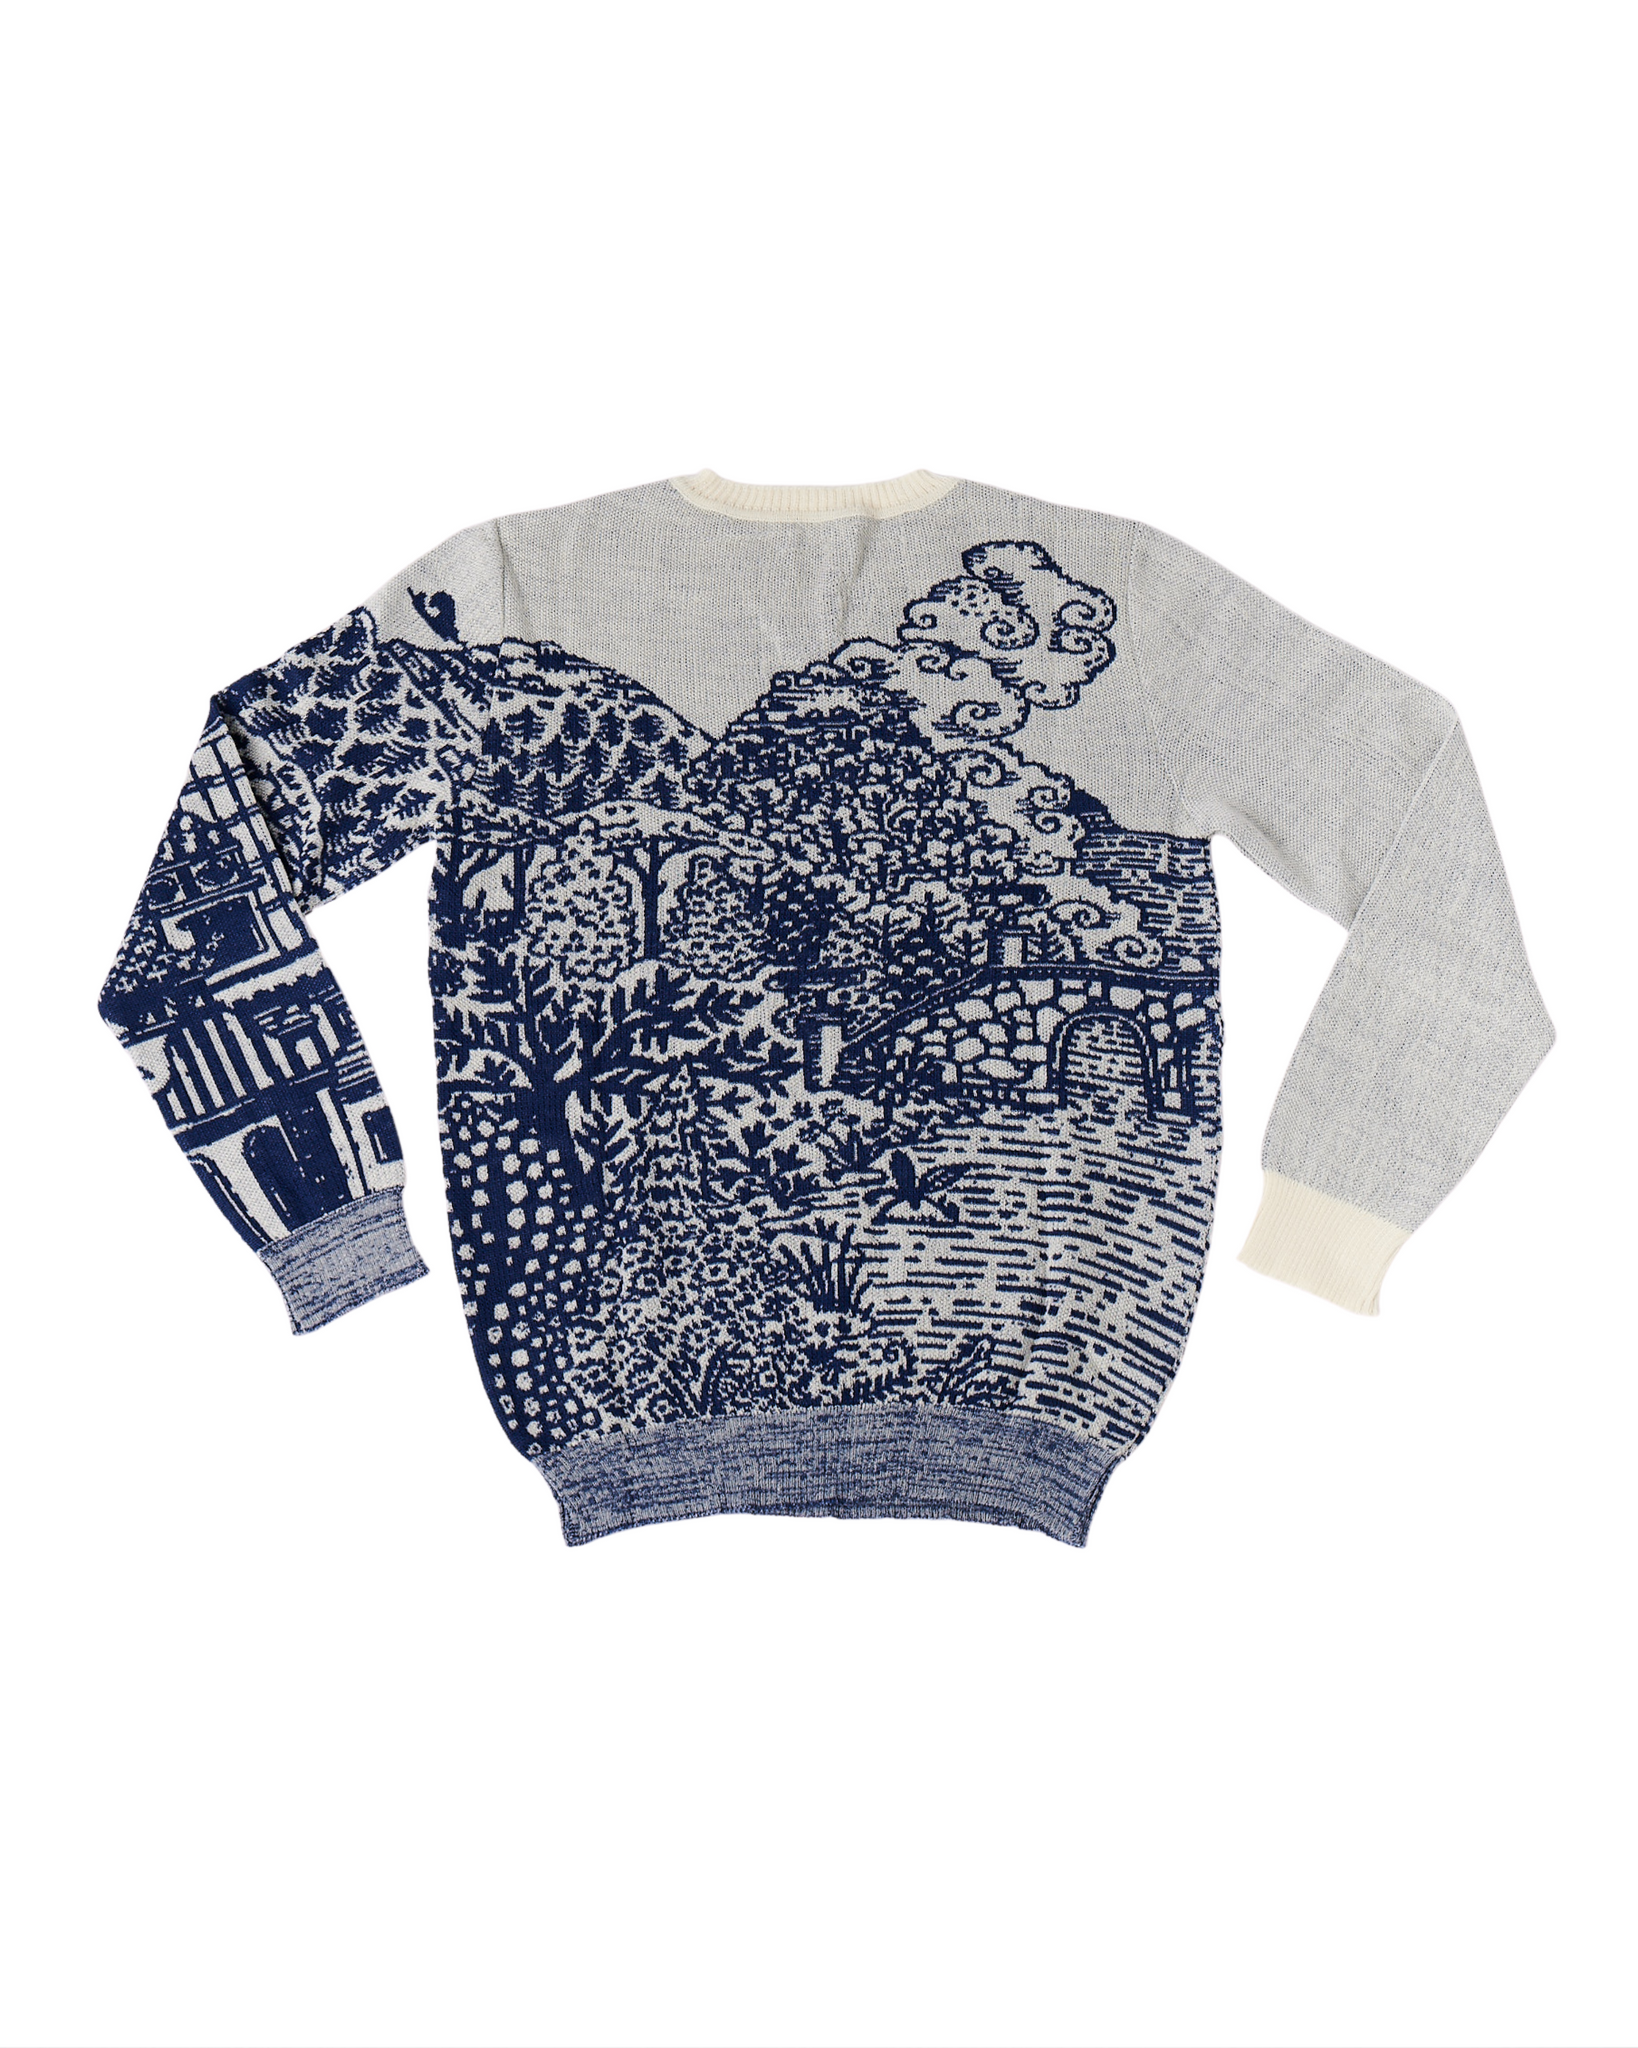 Wool & Mohair Sweater Collaboration featuring Michael Chandler